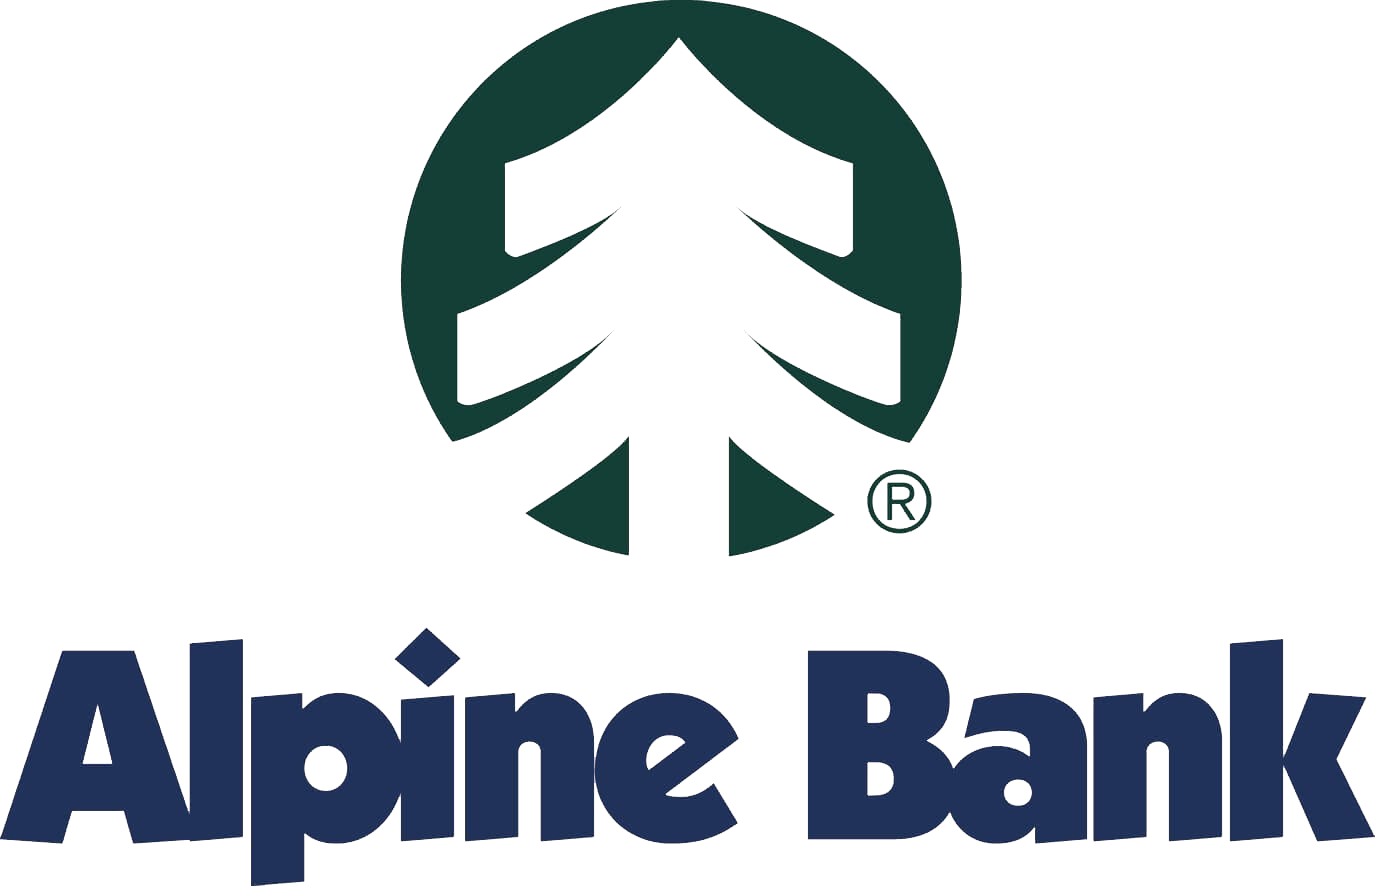 Alpine-Bank-Color-stacked-logo